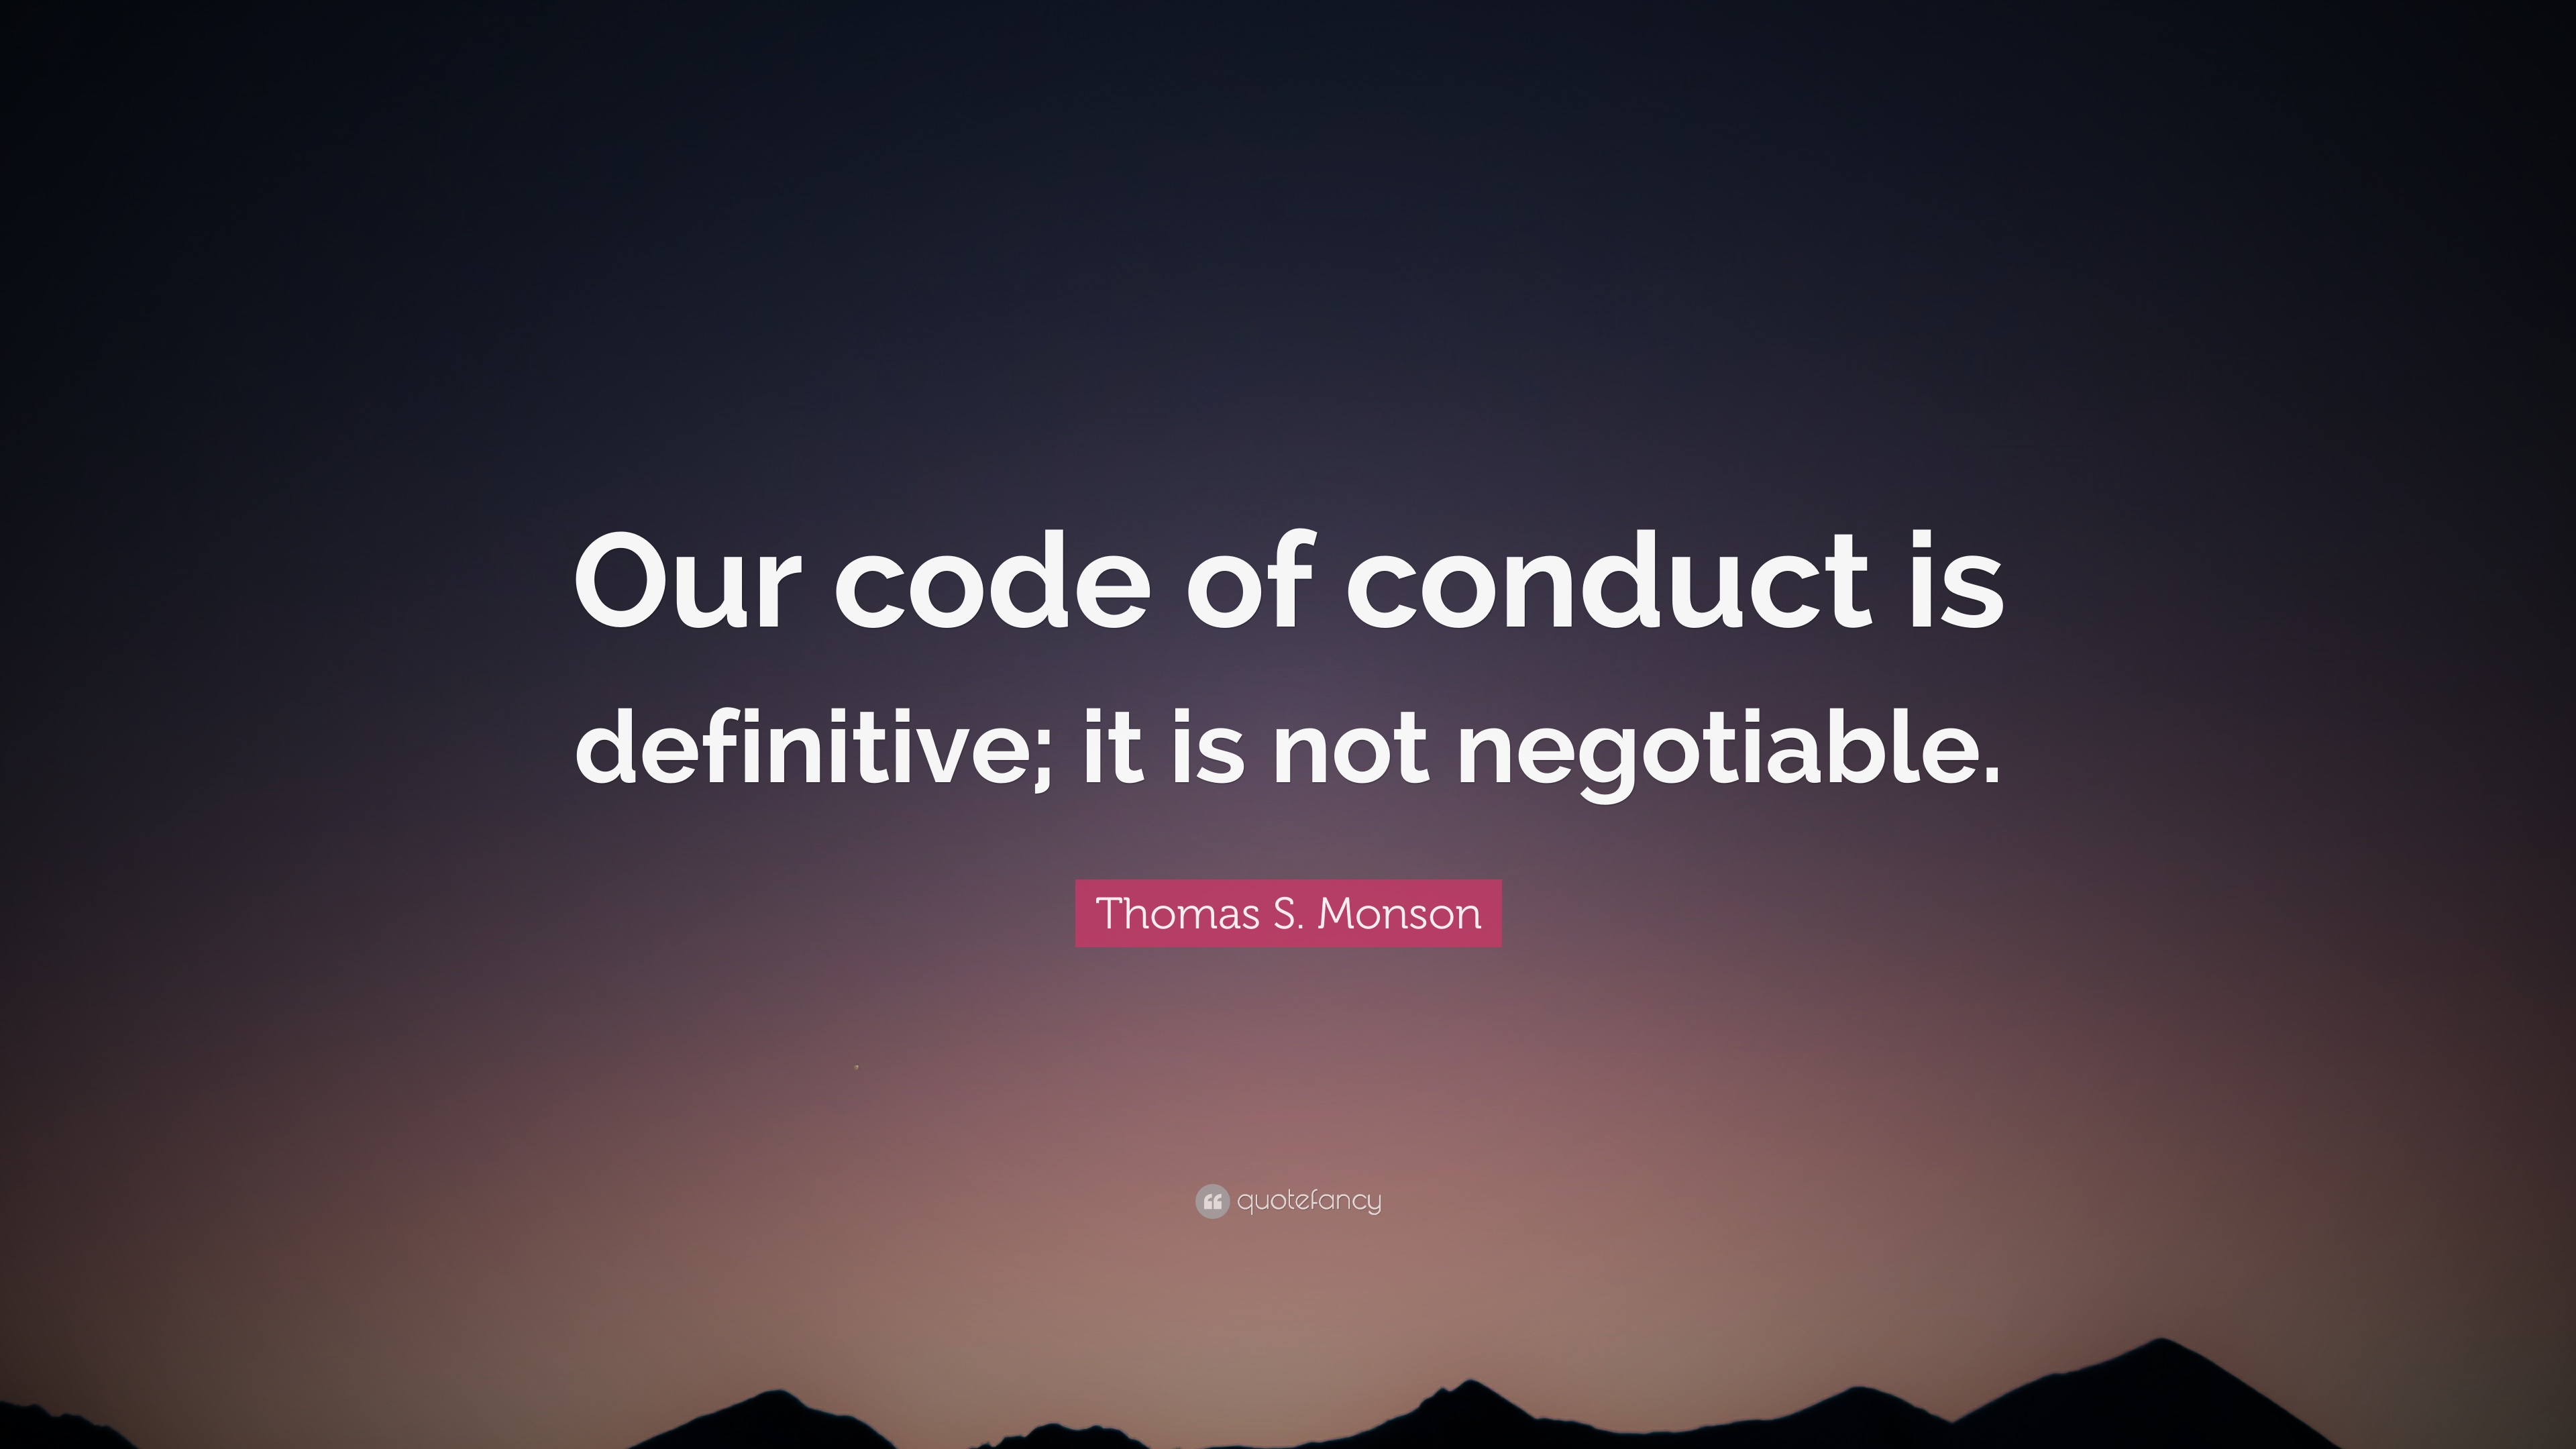 Motivational Quotes To Study Wallpaper Thomas S Monson Quote Our Code Of Conduct Is Definitive